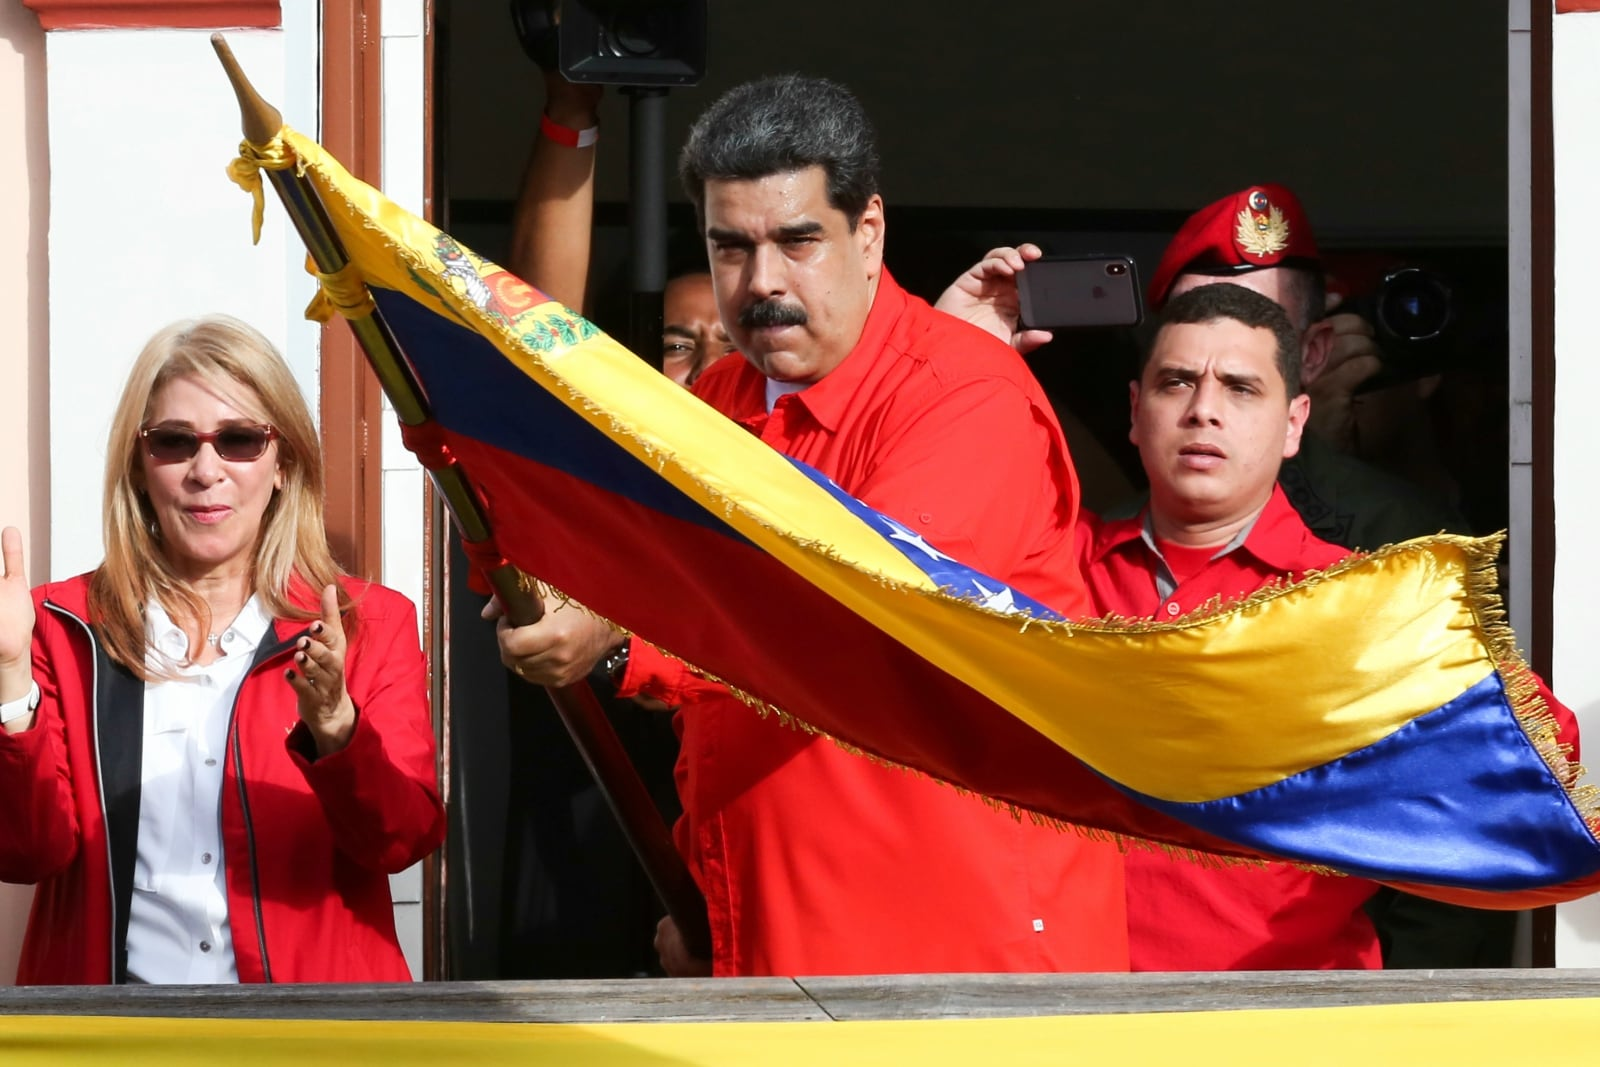 Venezuela's President Nicolas Maduro attends a rally in support of his government and to commemorate the 61st anniversary of the end of the dictatorship of Marcos Perez Jimenez next to his wife Cilia Flores in Caracas, Venezuela January 23, 2019. Miraflores Palace/Handout via REUTERS